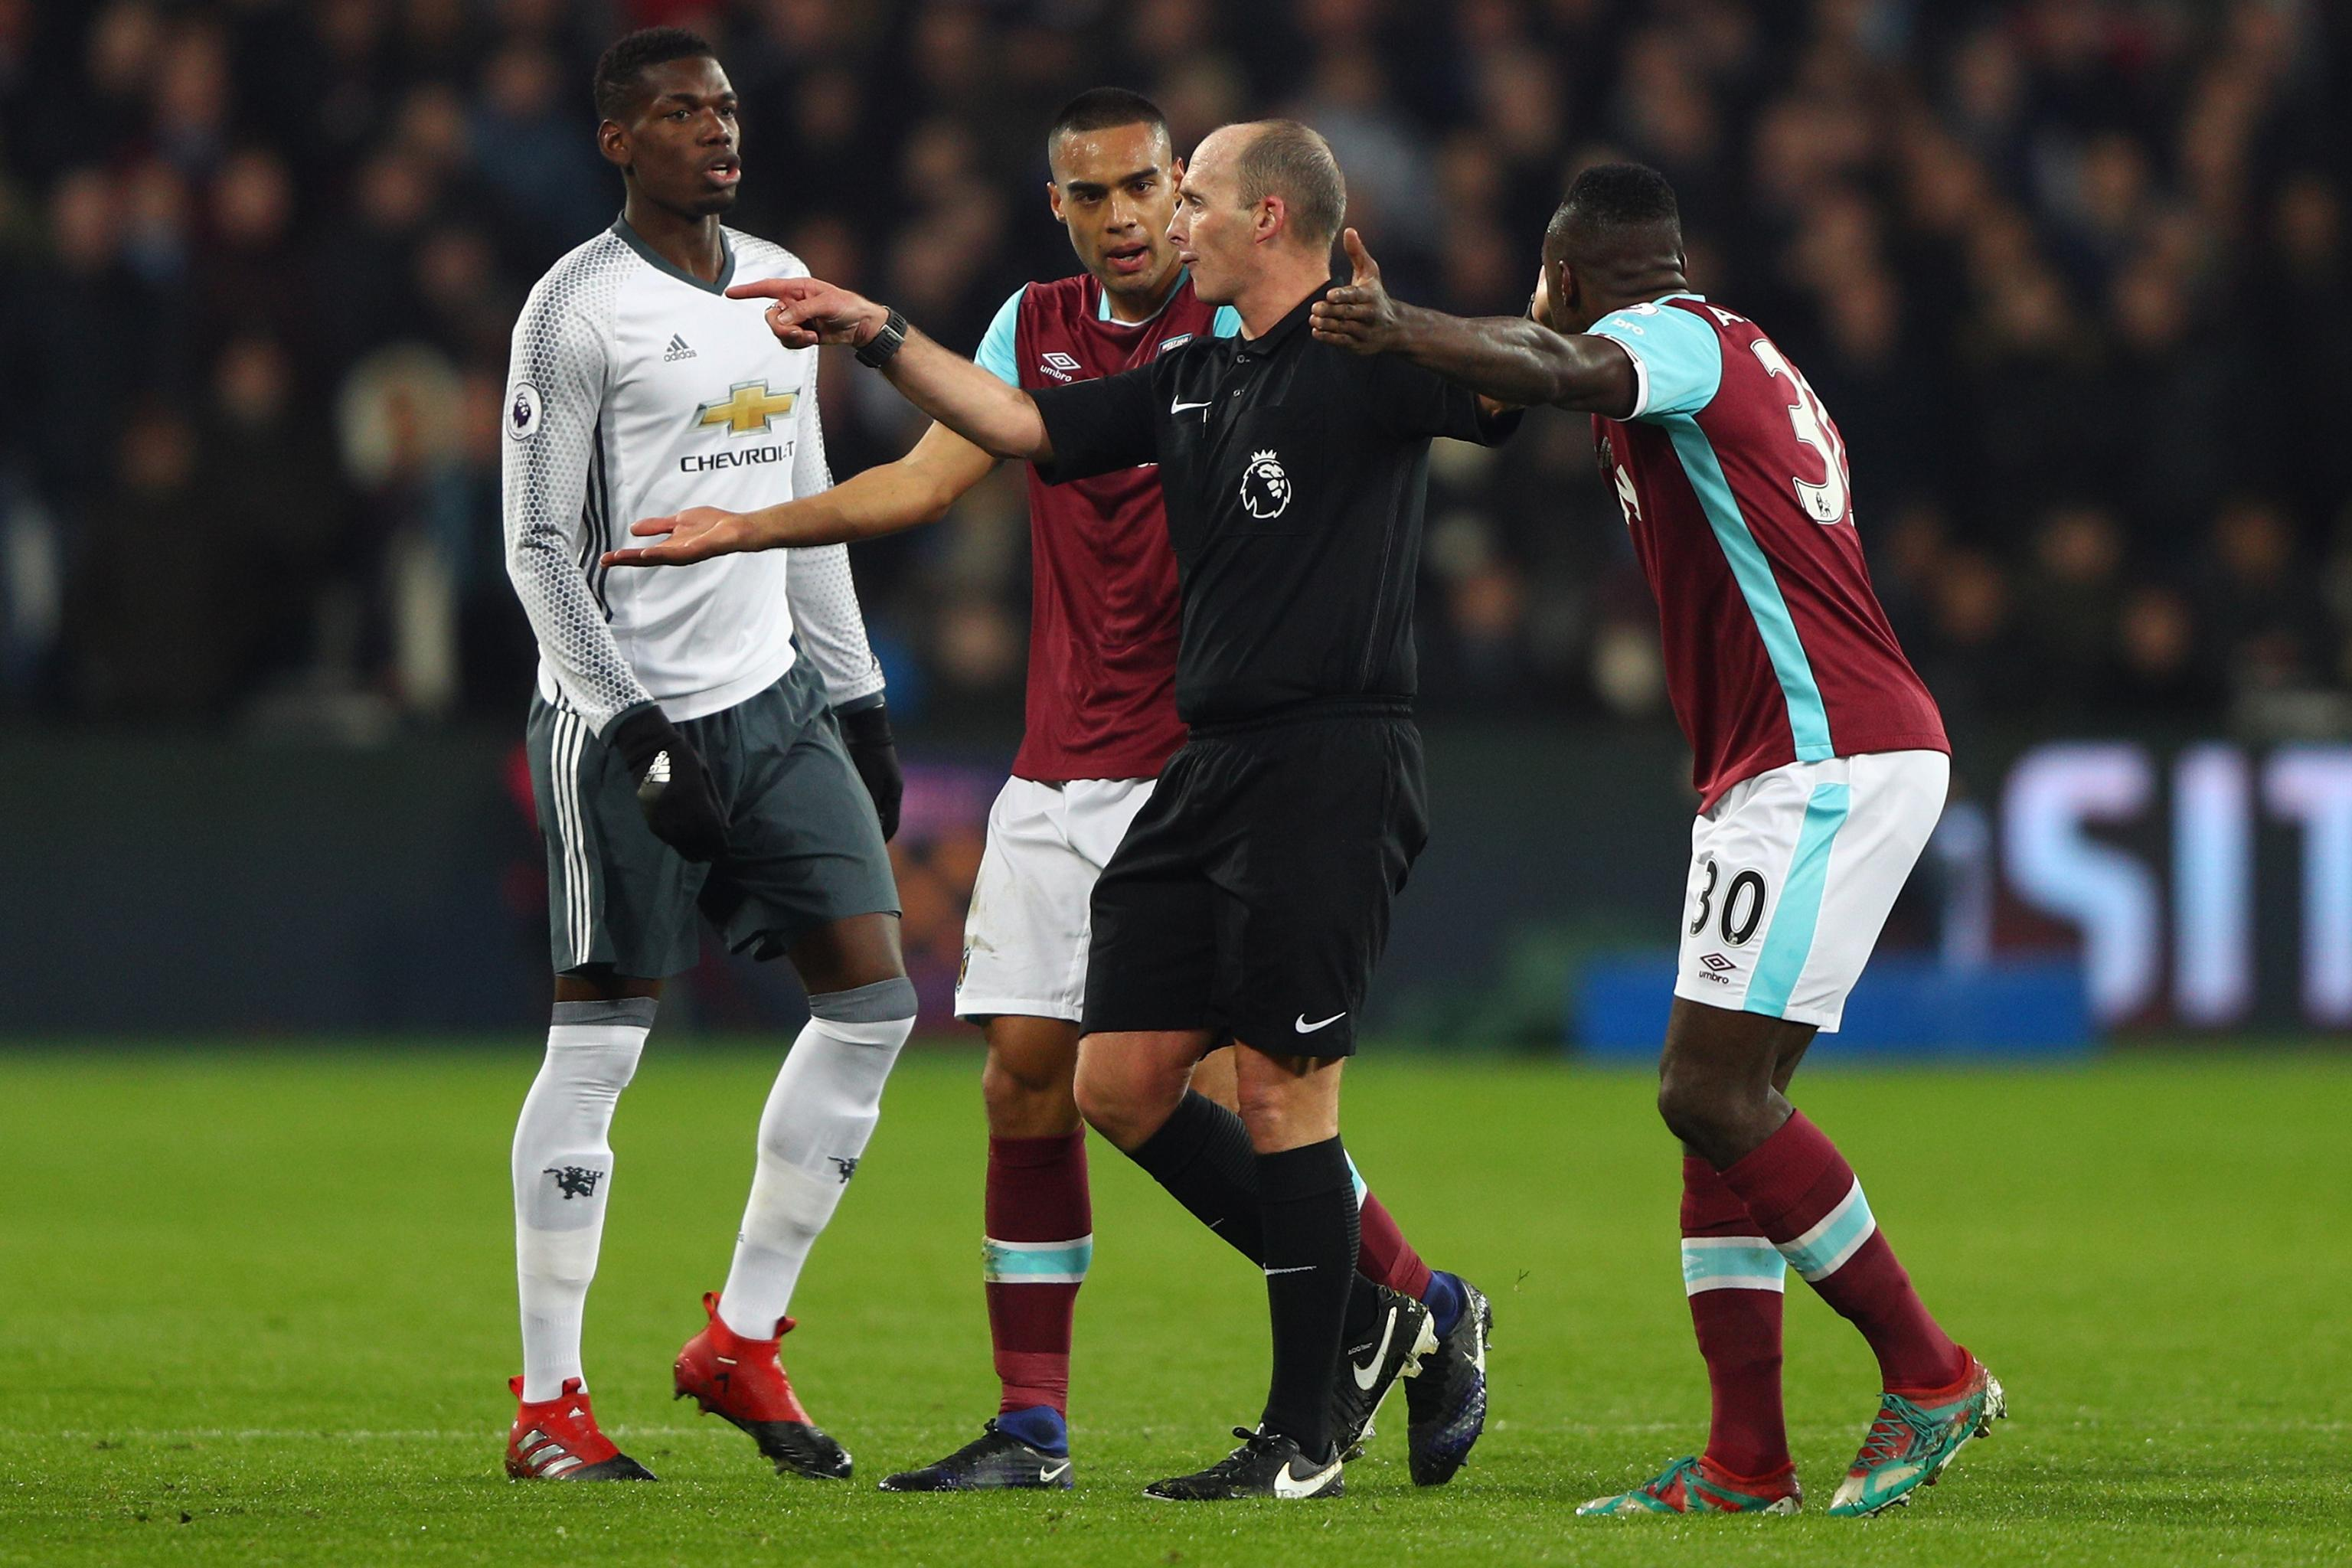 West Ham Vs Manchester United Score Reaction From 2017 Premier League Match Bleacher Report Latest News Videos And Highlights